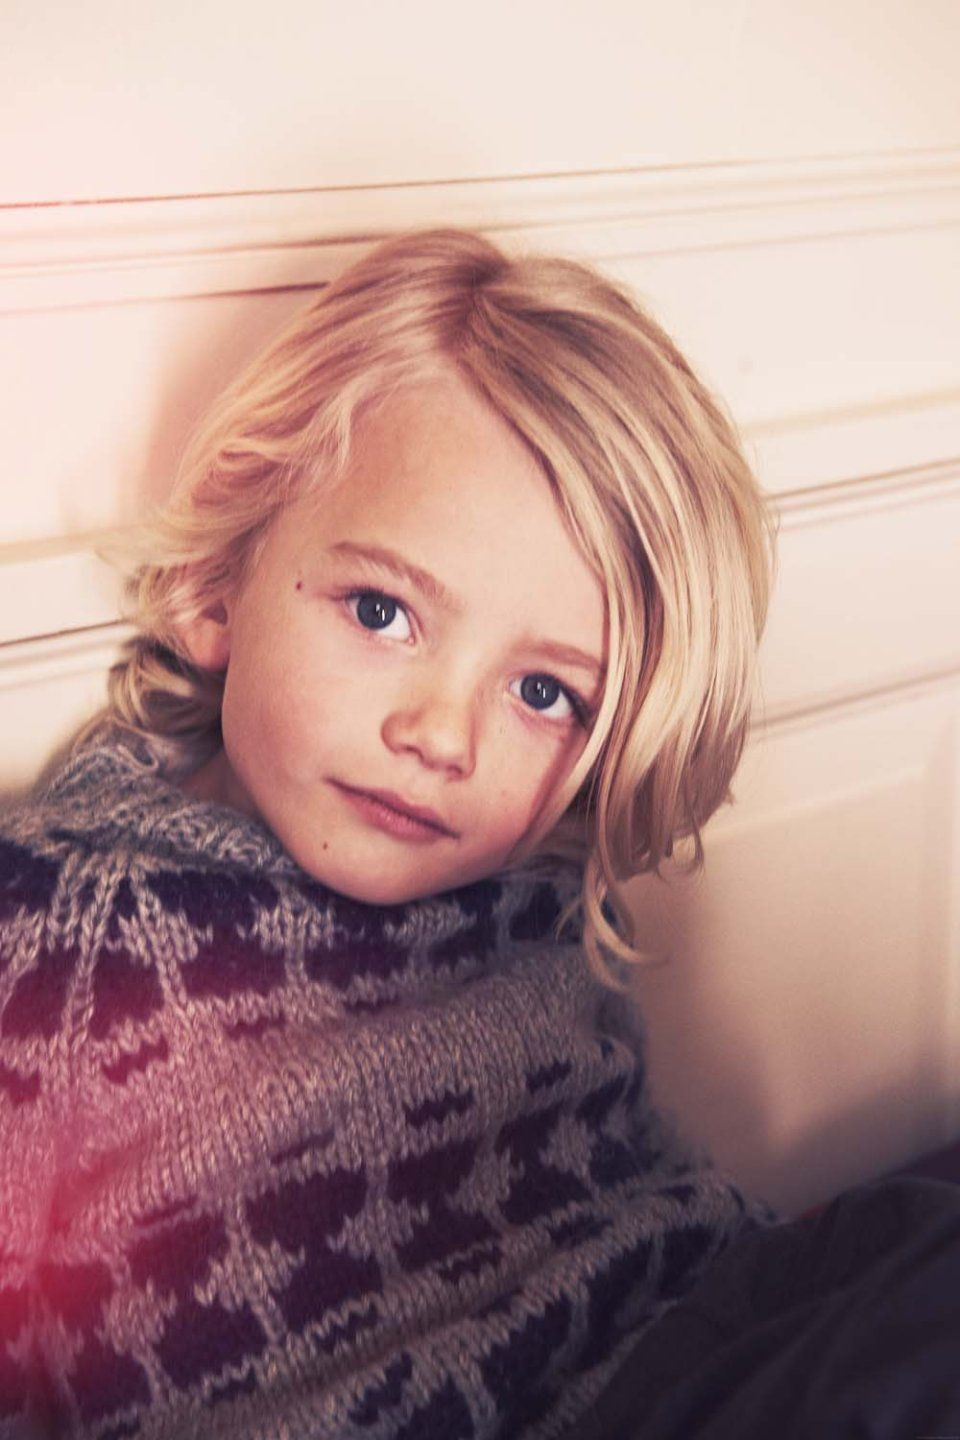 Long hair for toddler boy photo for doolittle magazine with franne voigt  hair  kids